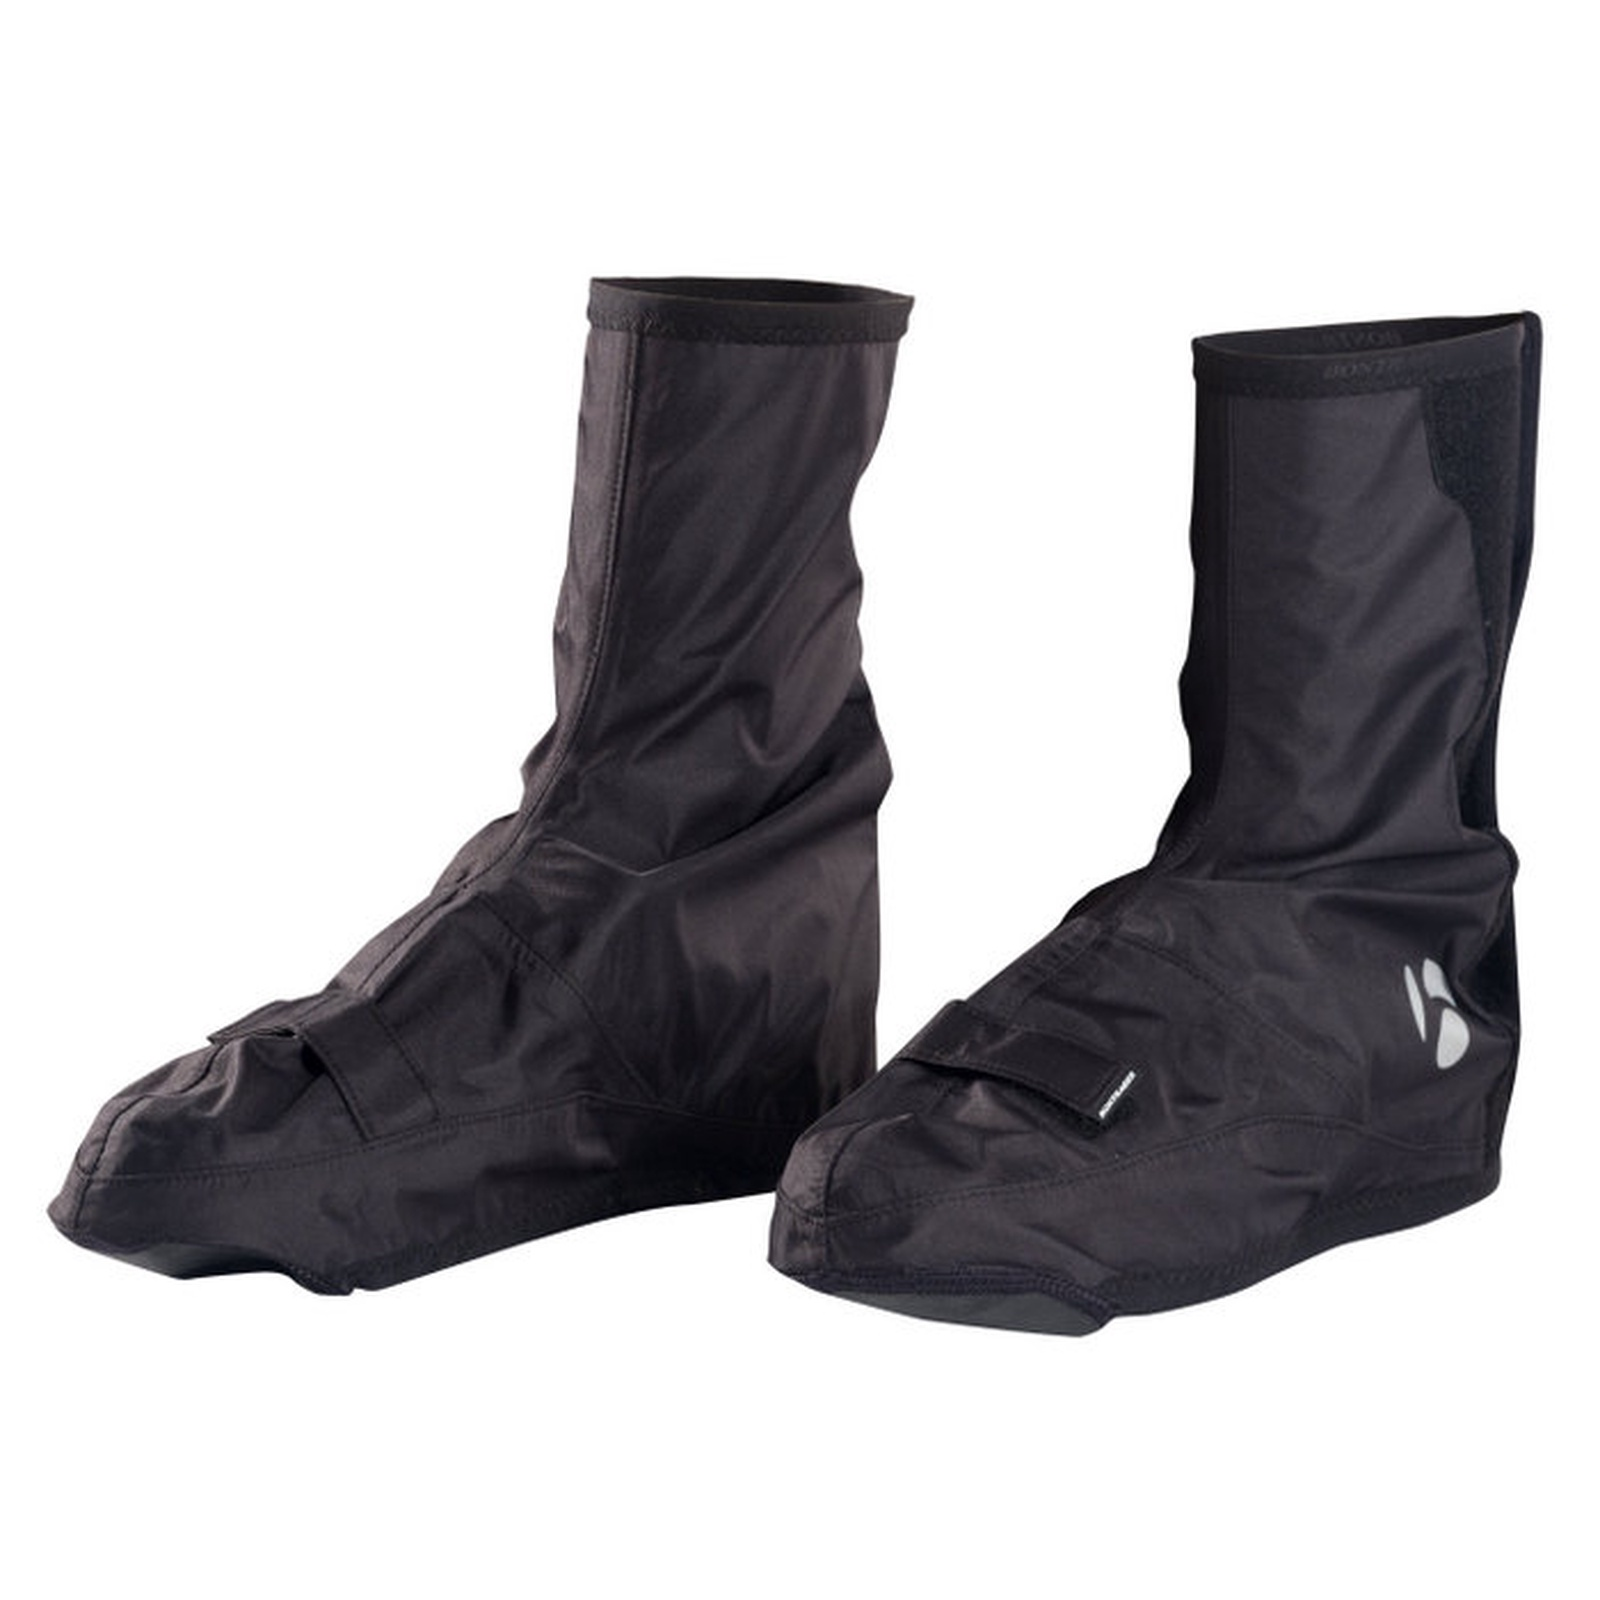 Town Stormshell Overshoe